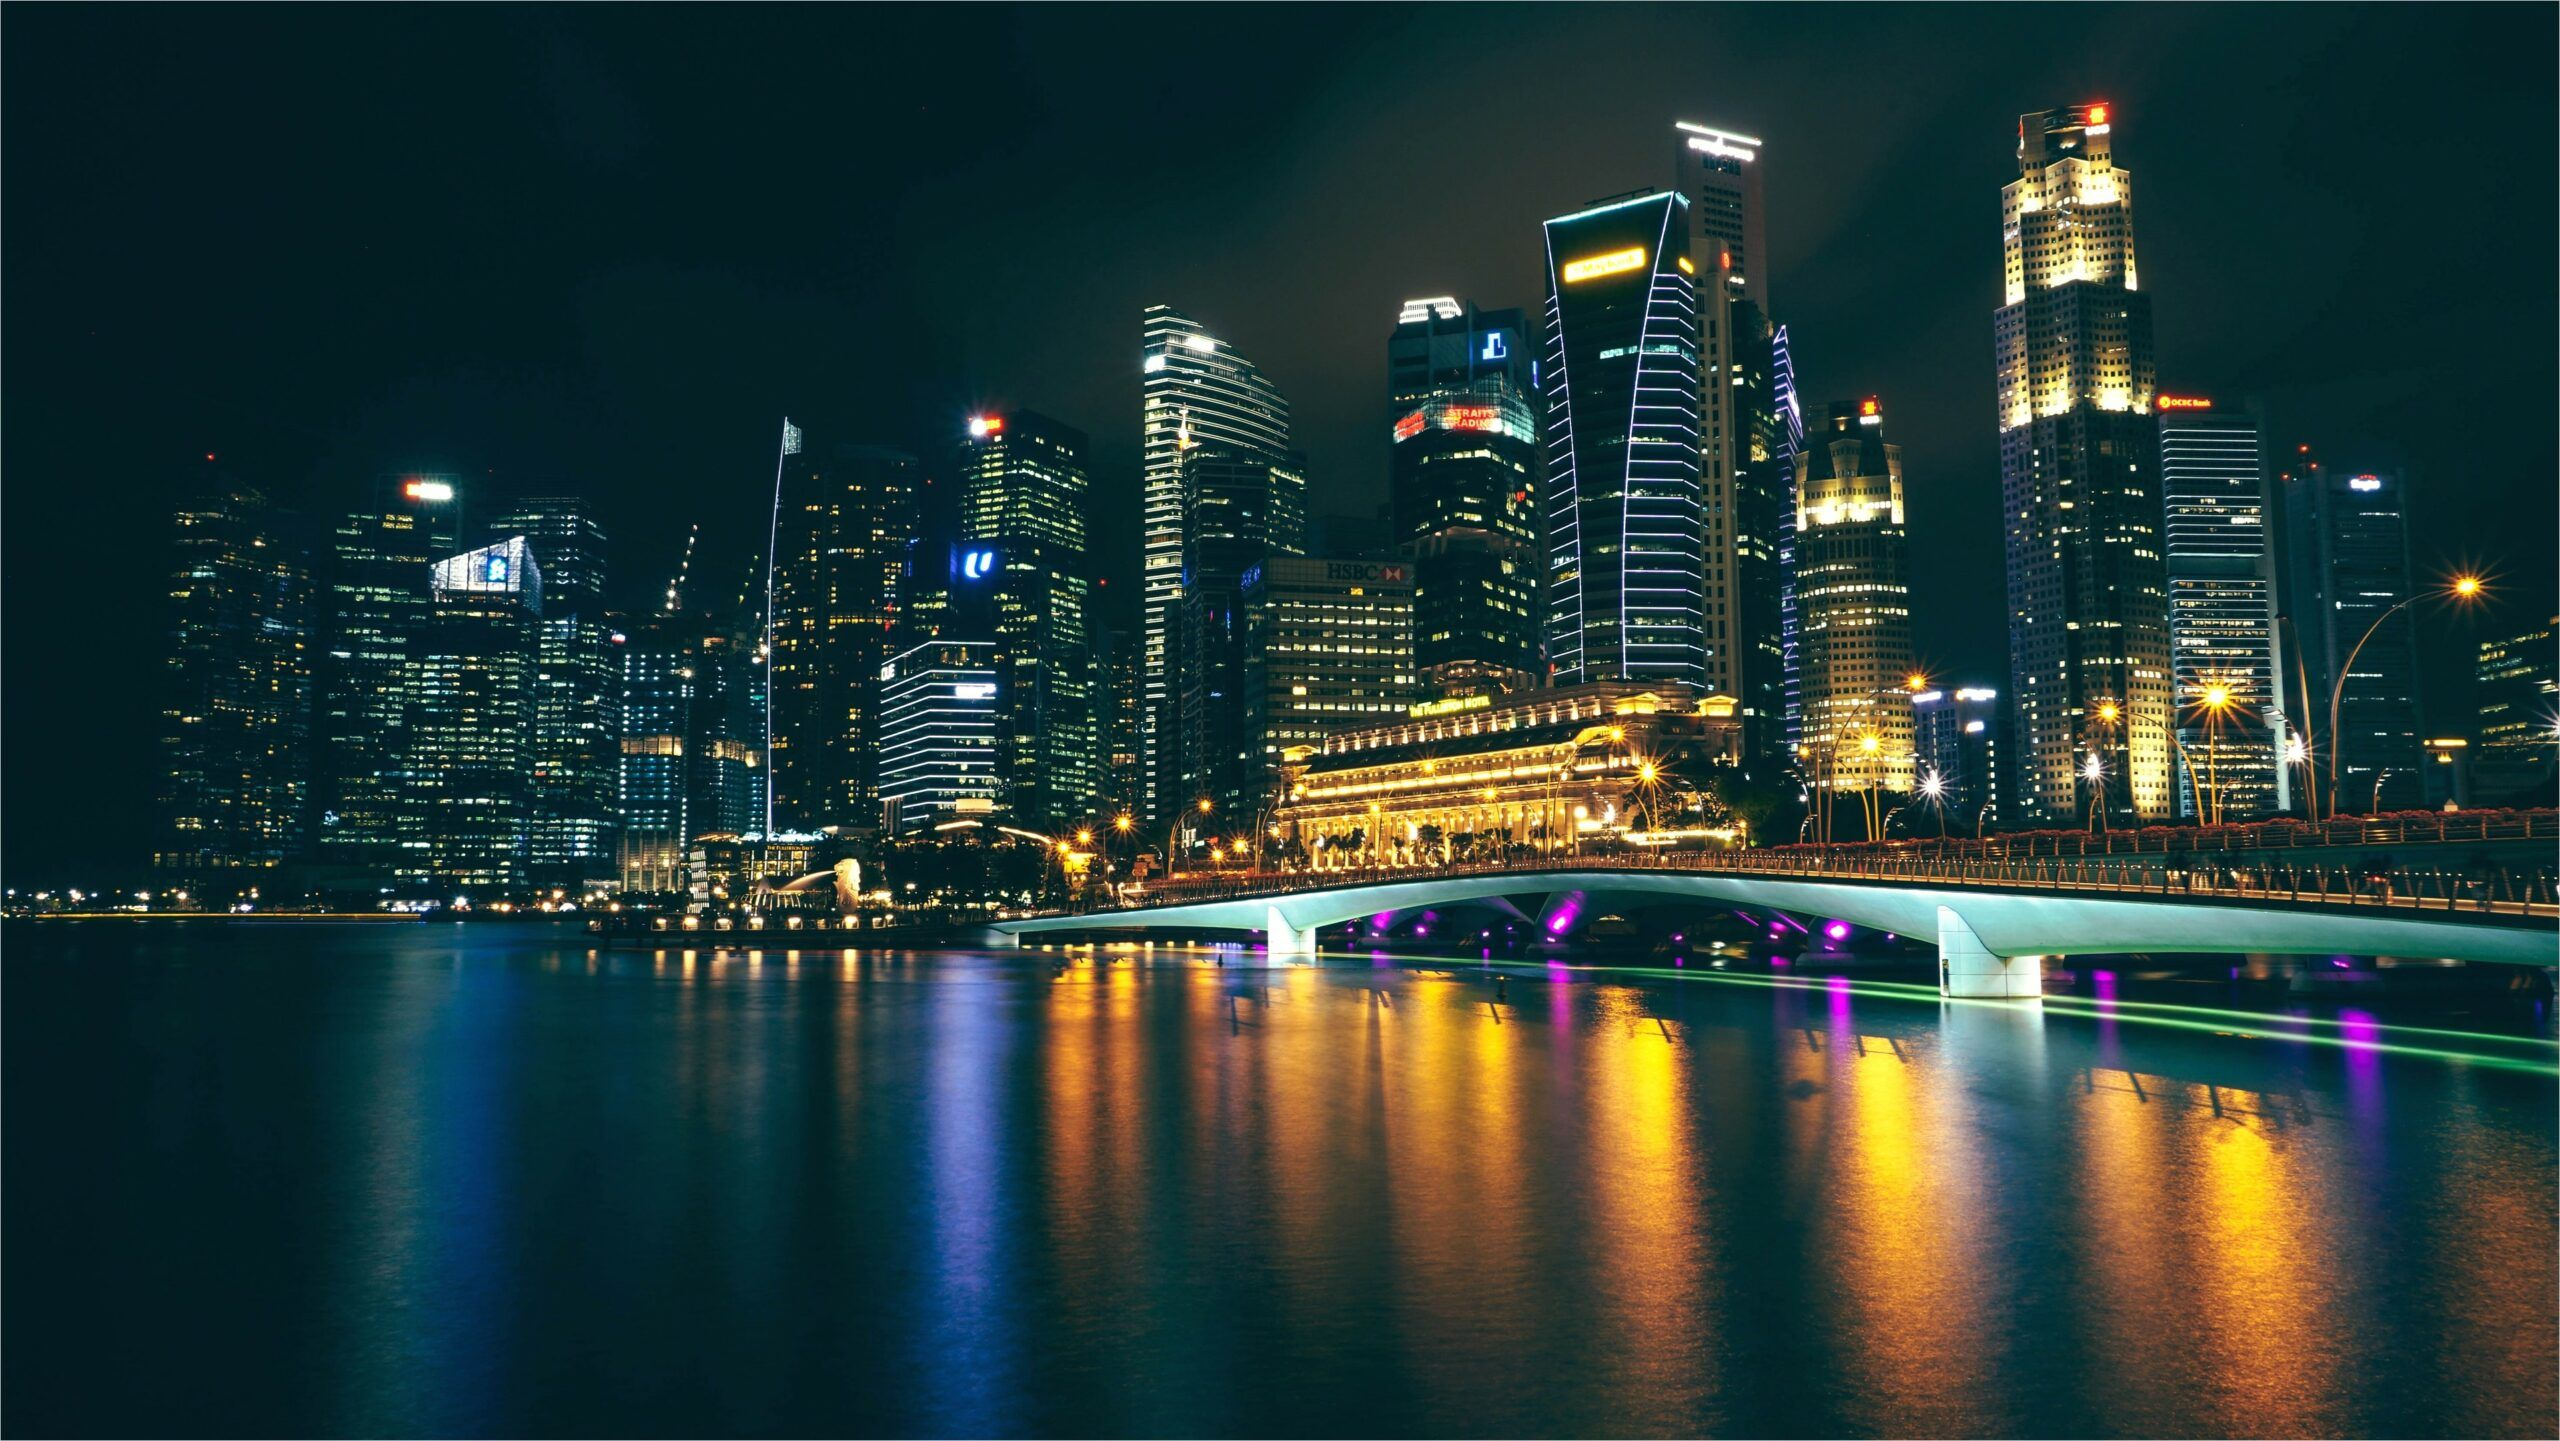 4k City Night Wallpaper In 2020 Night City City Lights At Night Singapore Photos